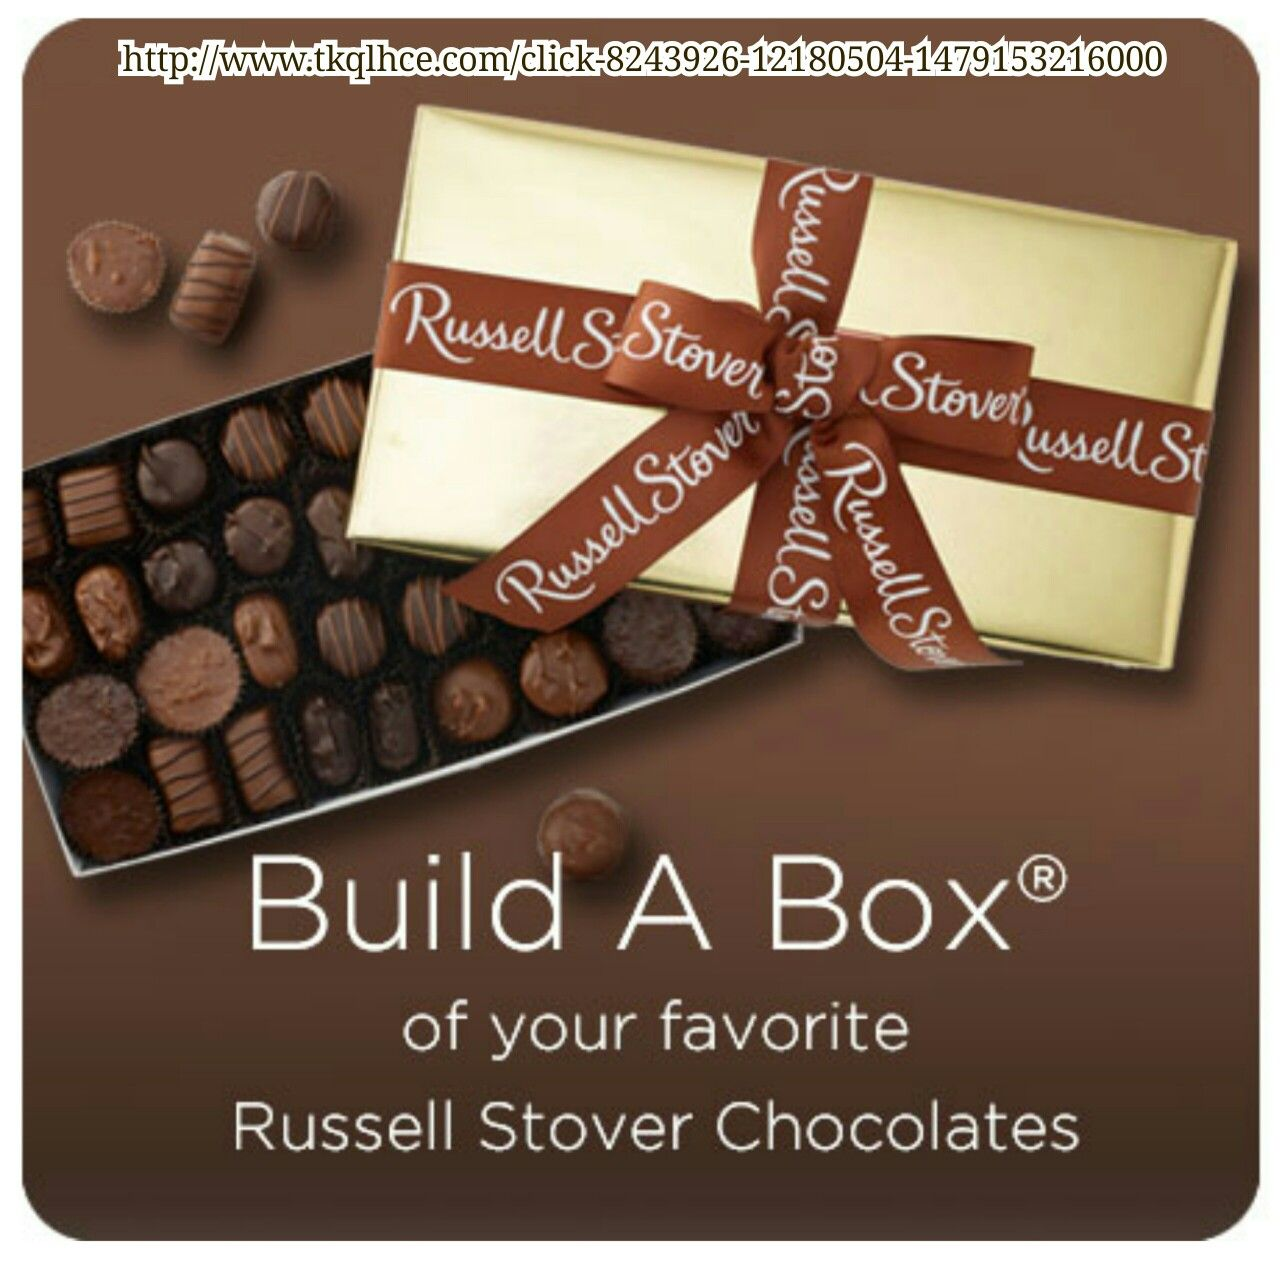 Russell Stover Order Online Get delicious Russell Stover ...